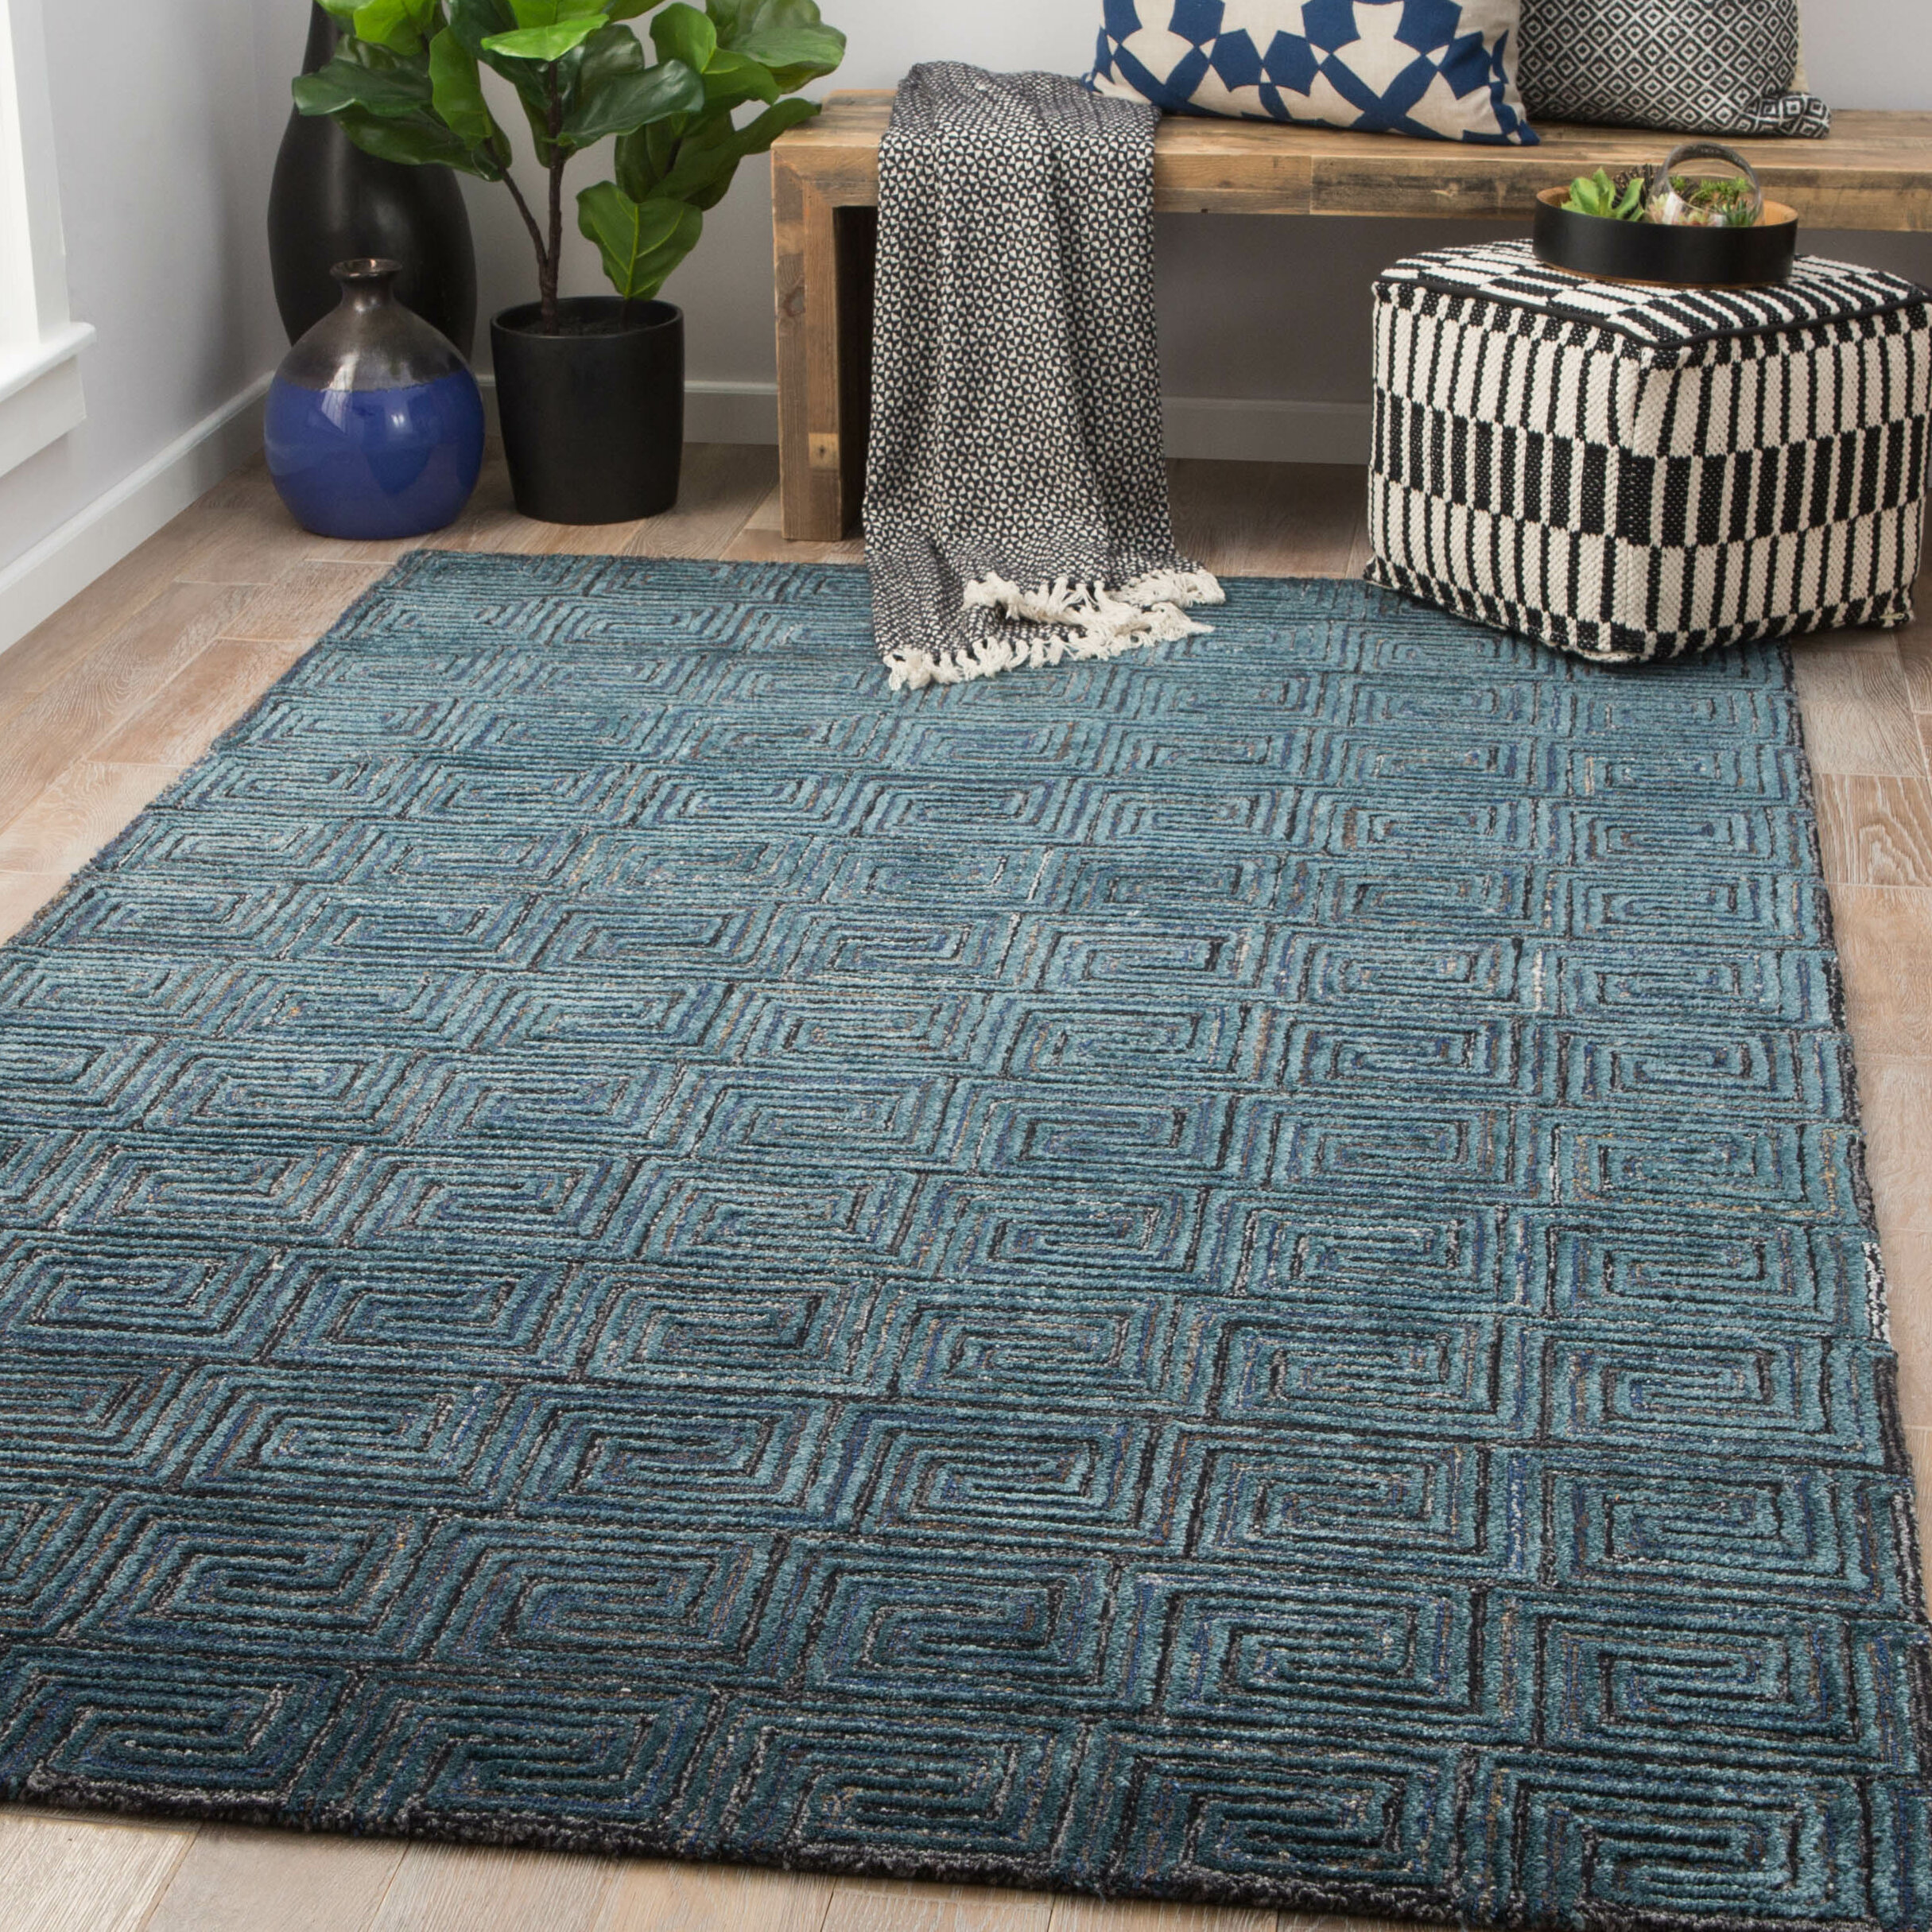 Pottery Barn Gray Mist Lizzie Tufted Wool 3x5 Rug Rugs